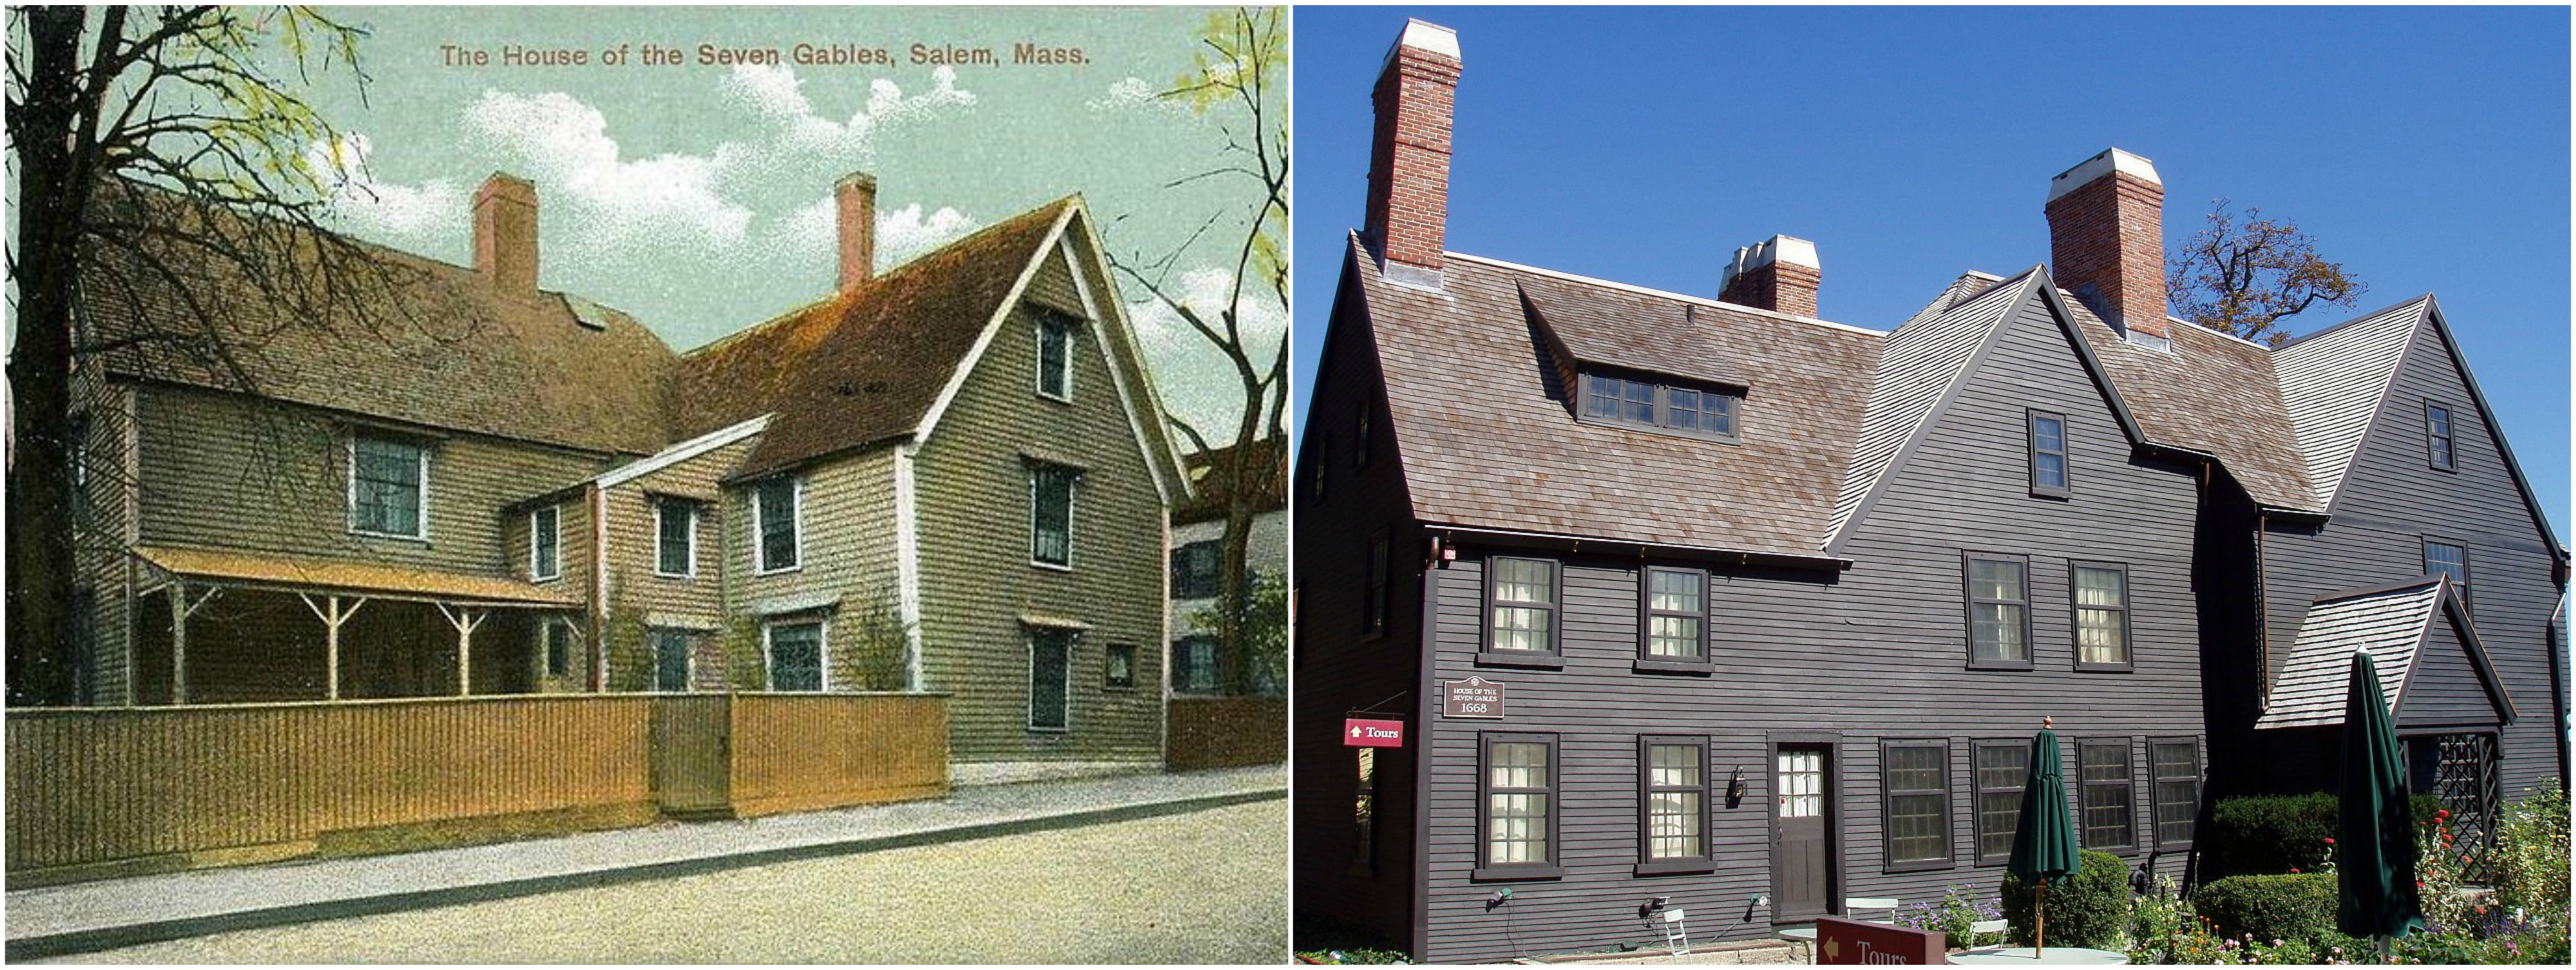 House of the Seven Gables, c. 1905, photo courtesy of WikiCommons, juxtaposed against the restored 